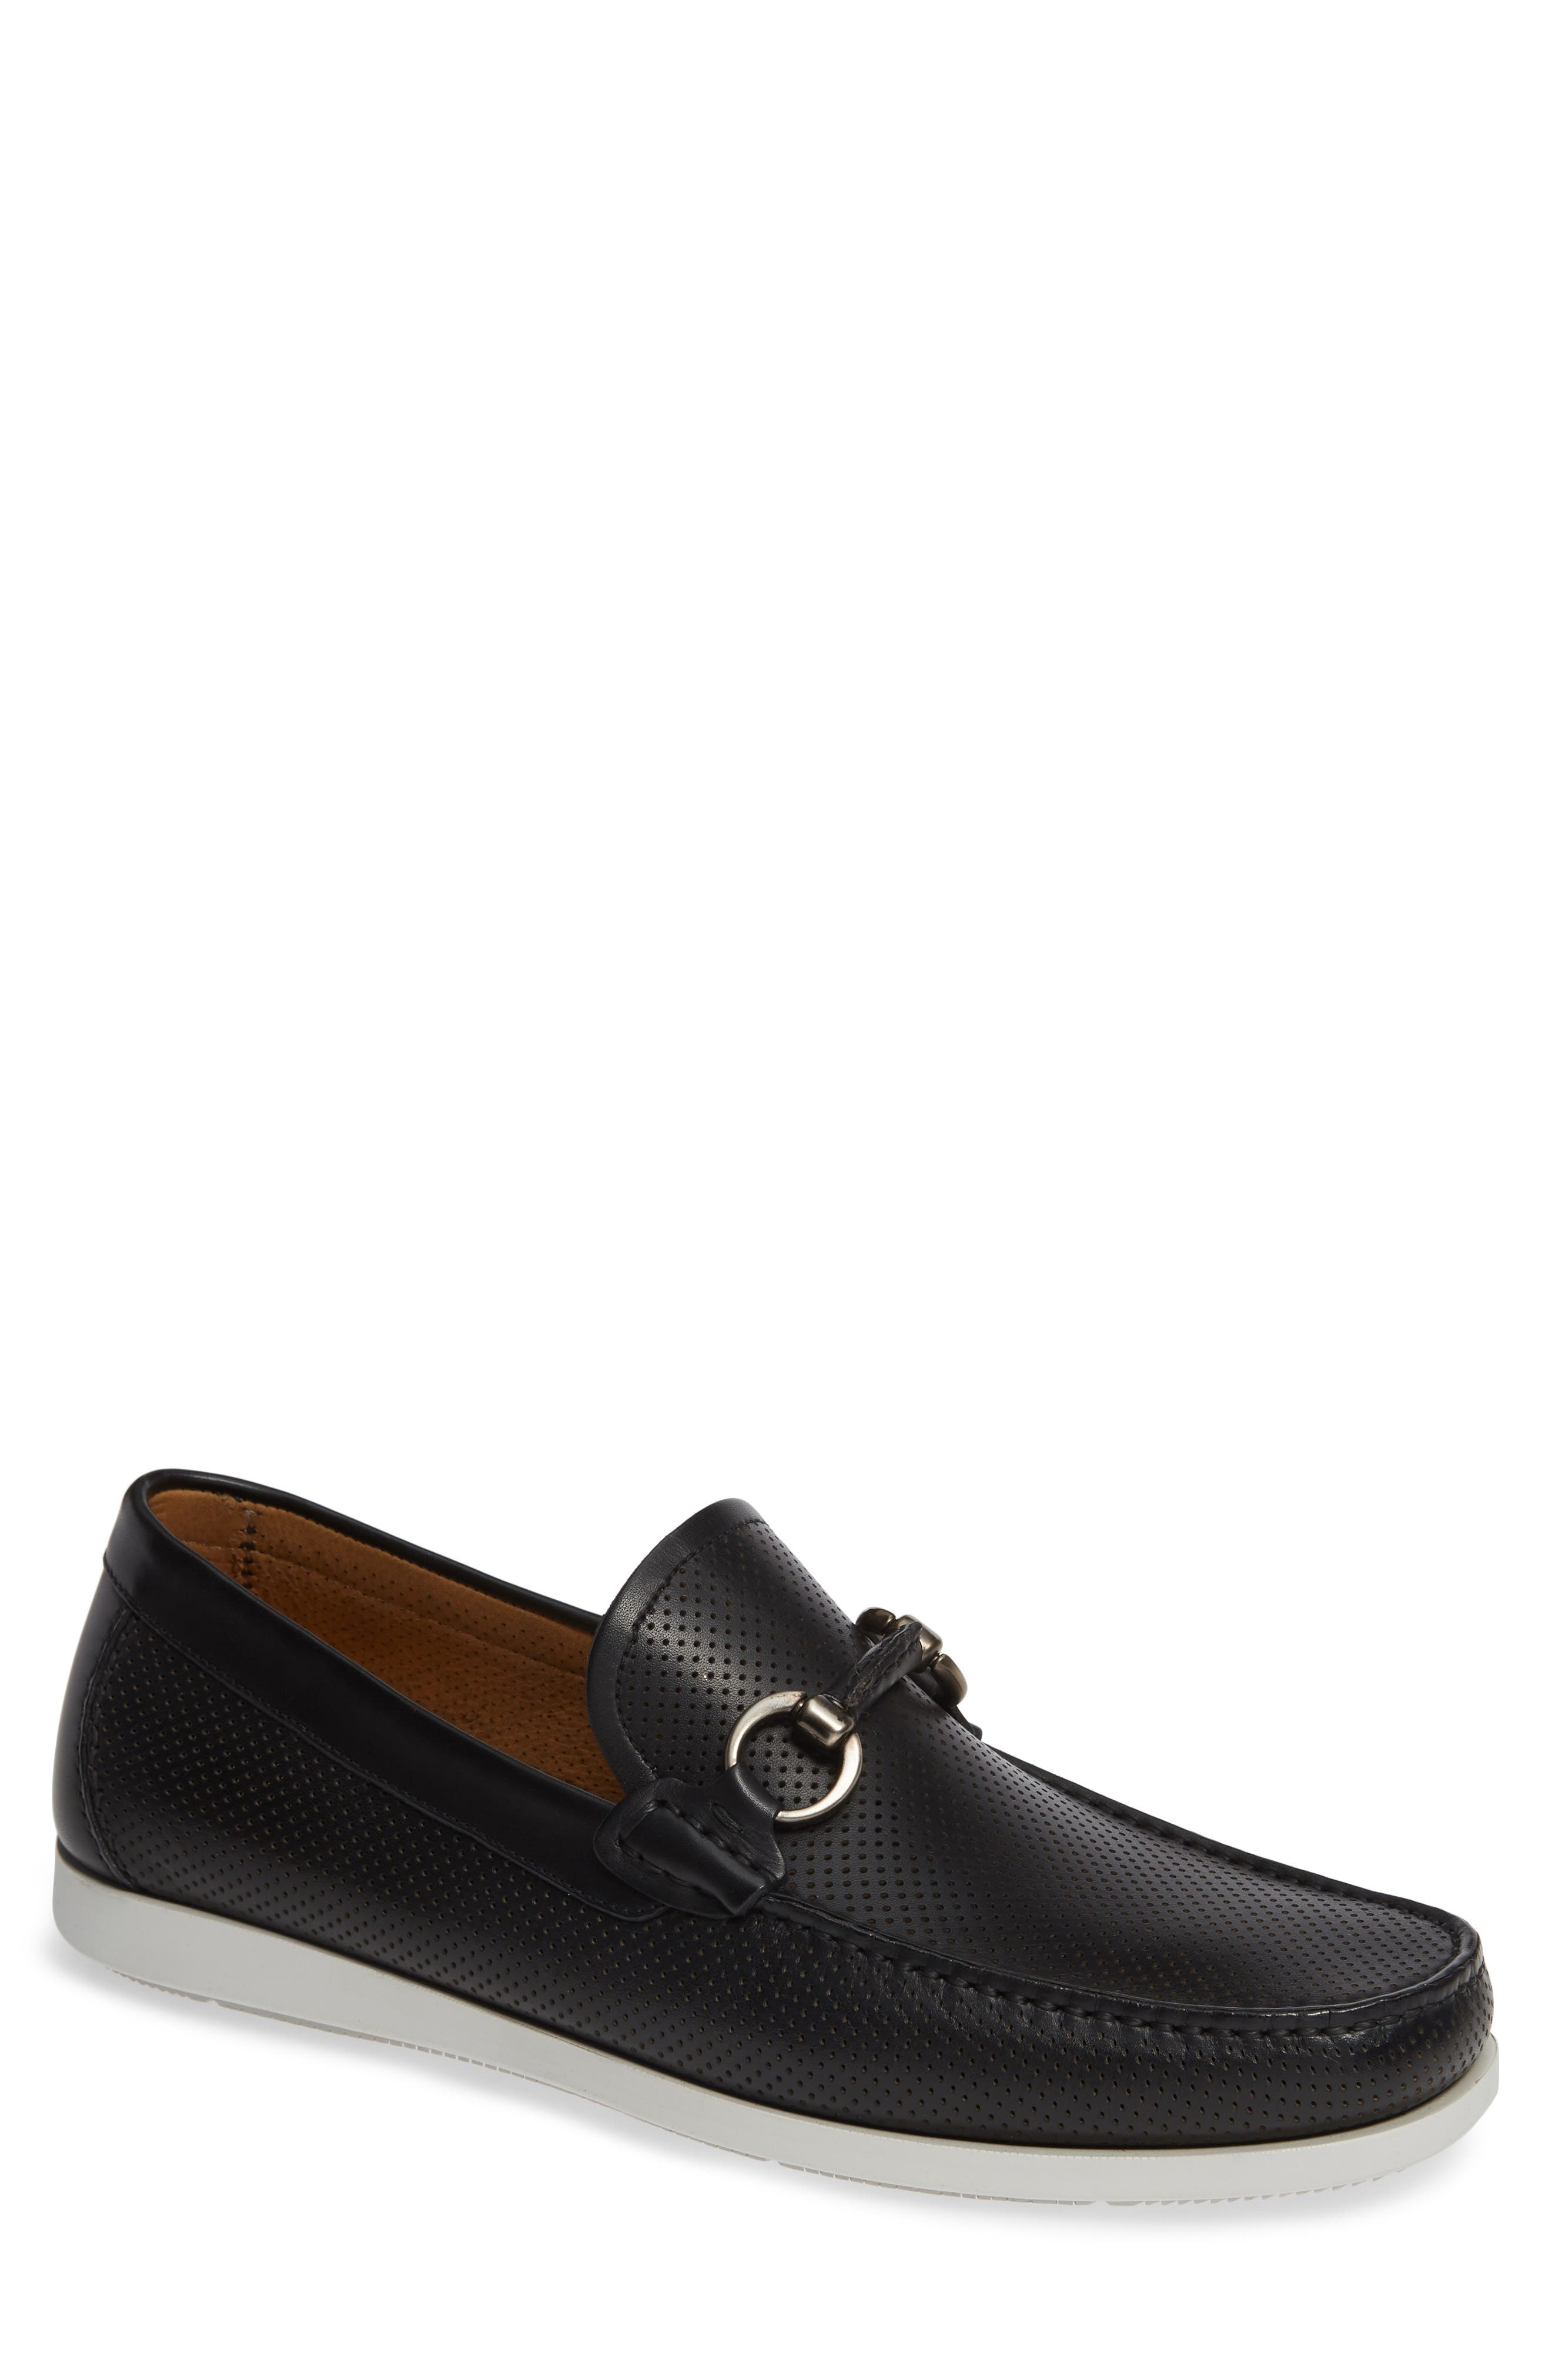 Beasley Perforated Moc Toe Bit Loafer,                         Main,                         color, BLACK LEATHER